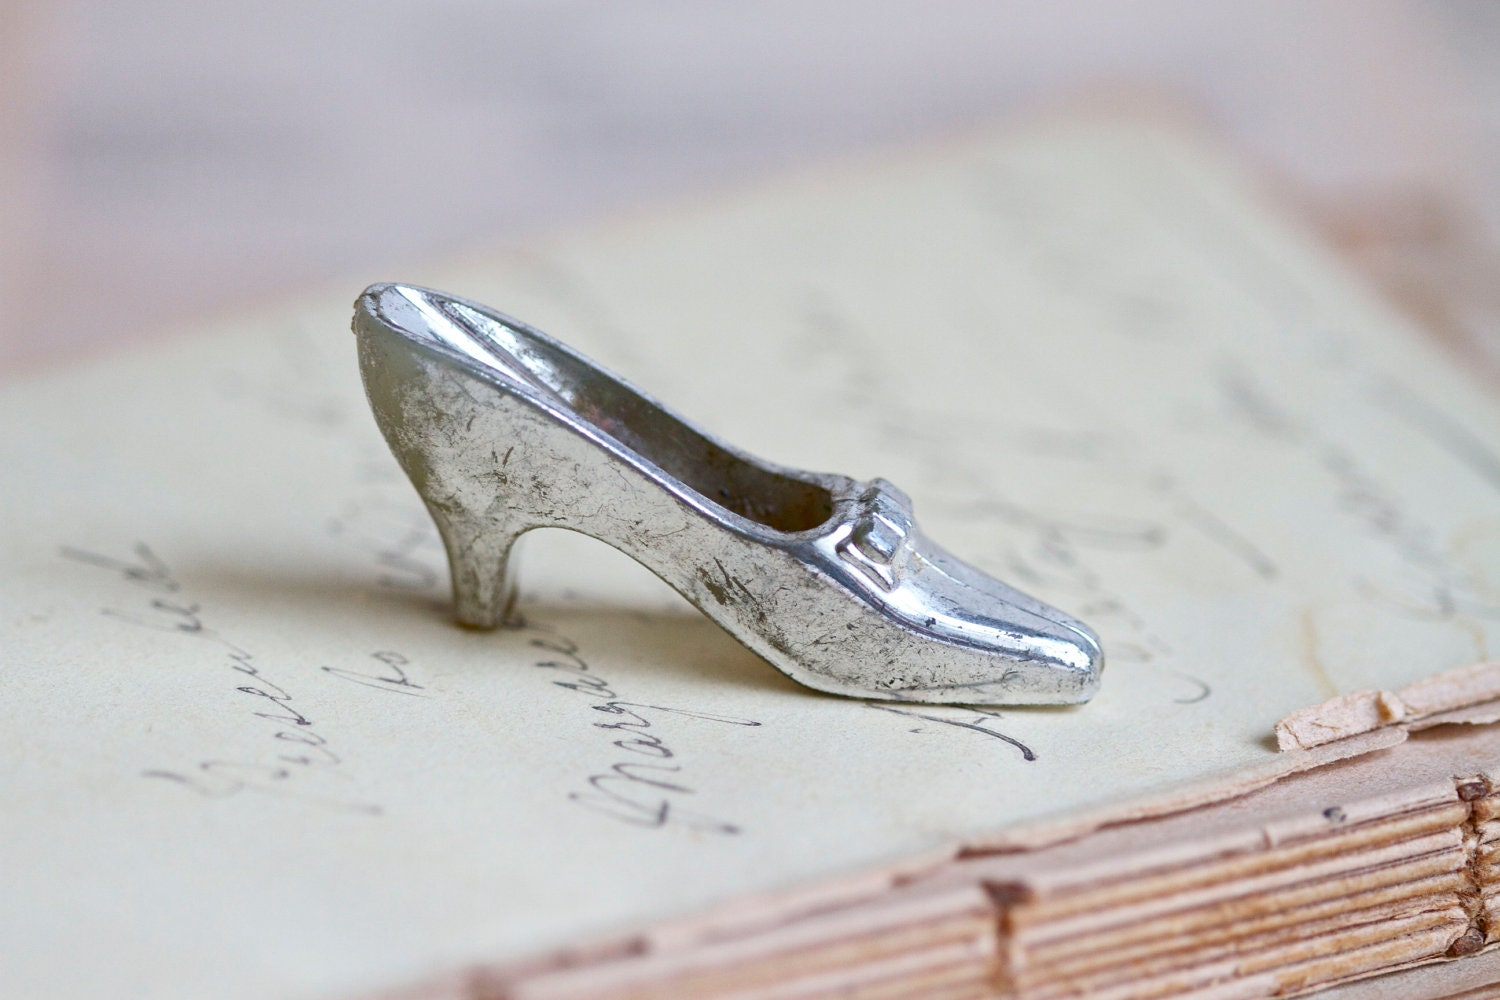 Miniature Baroque Shoe - Cinderella Slipper Figurine with a Dusty Silvery Finnish - Meanglean